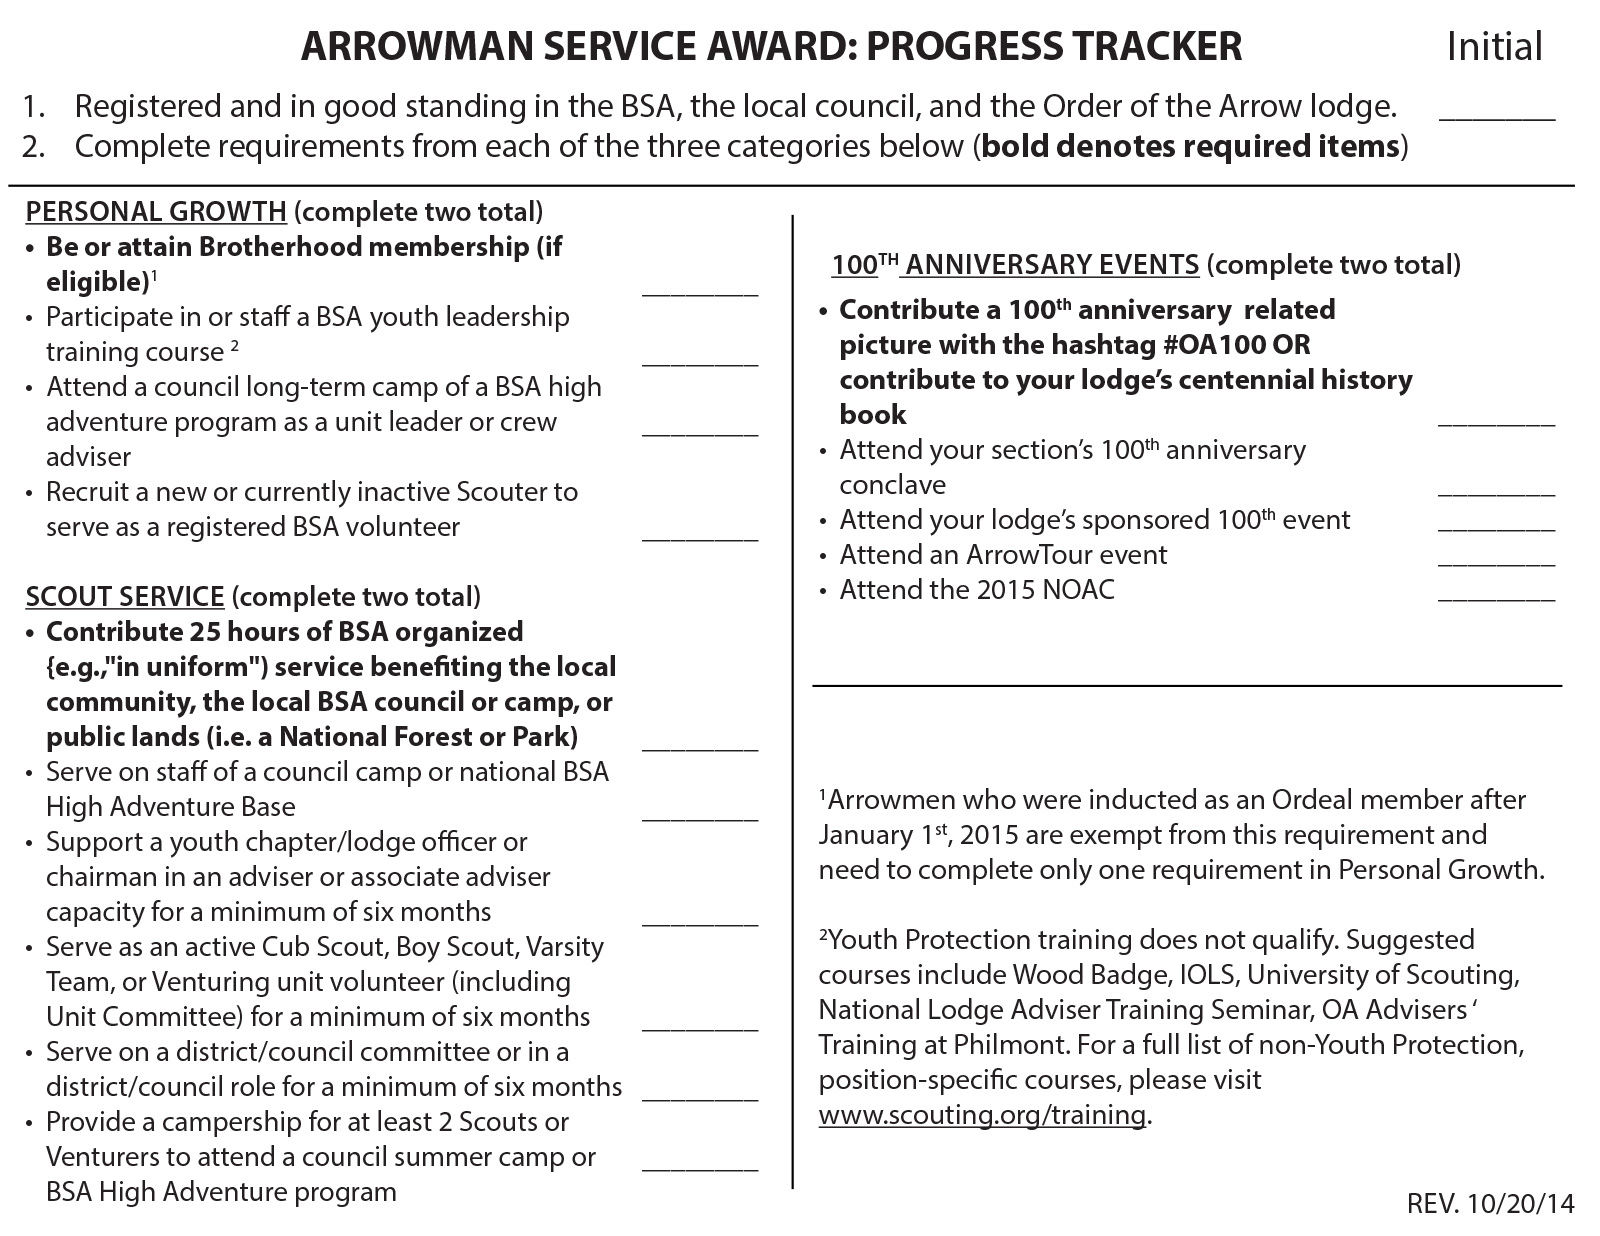 arrowman-service-award-requirements-for-adults